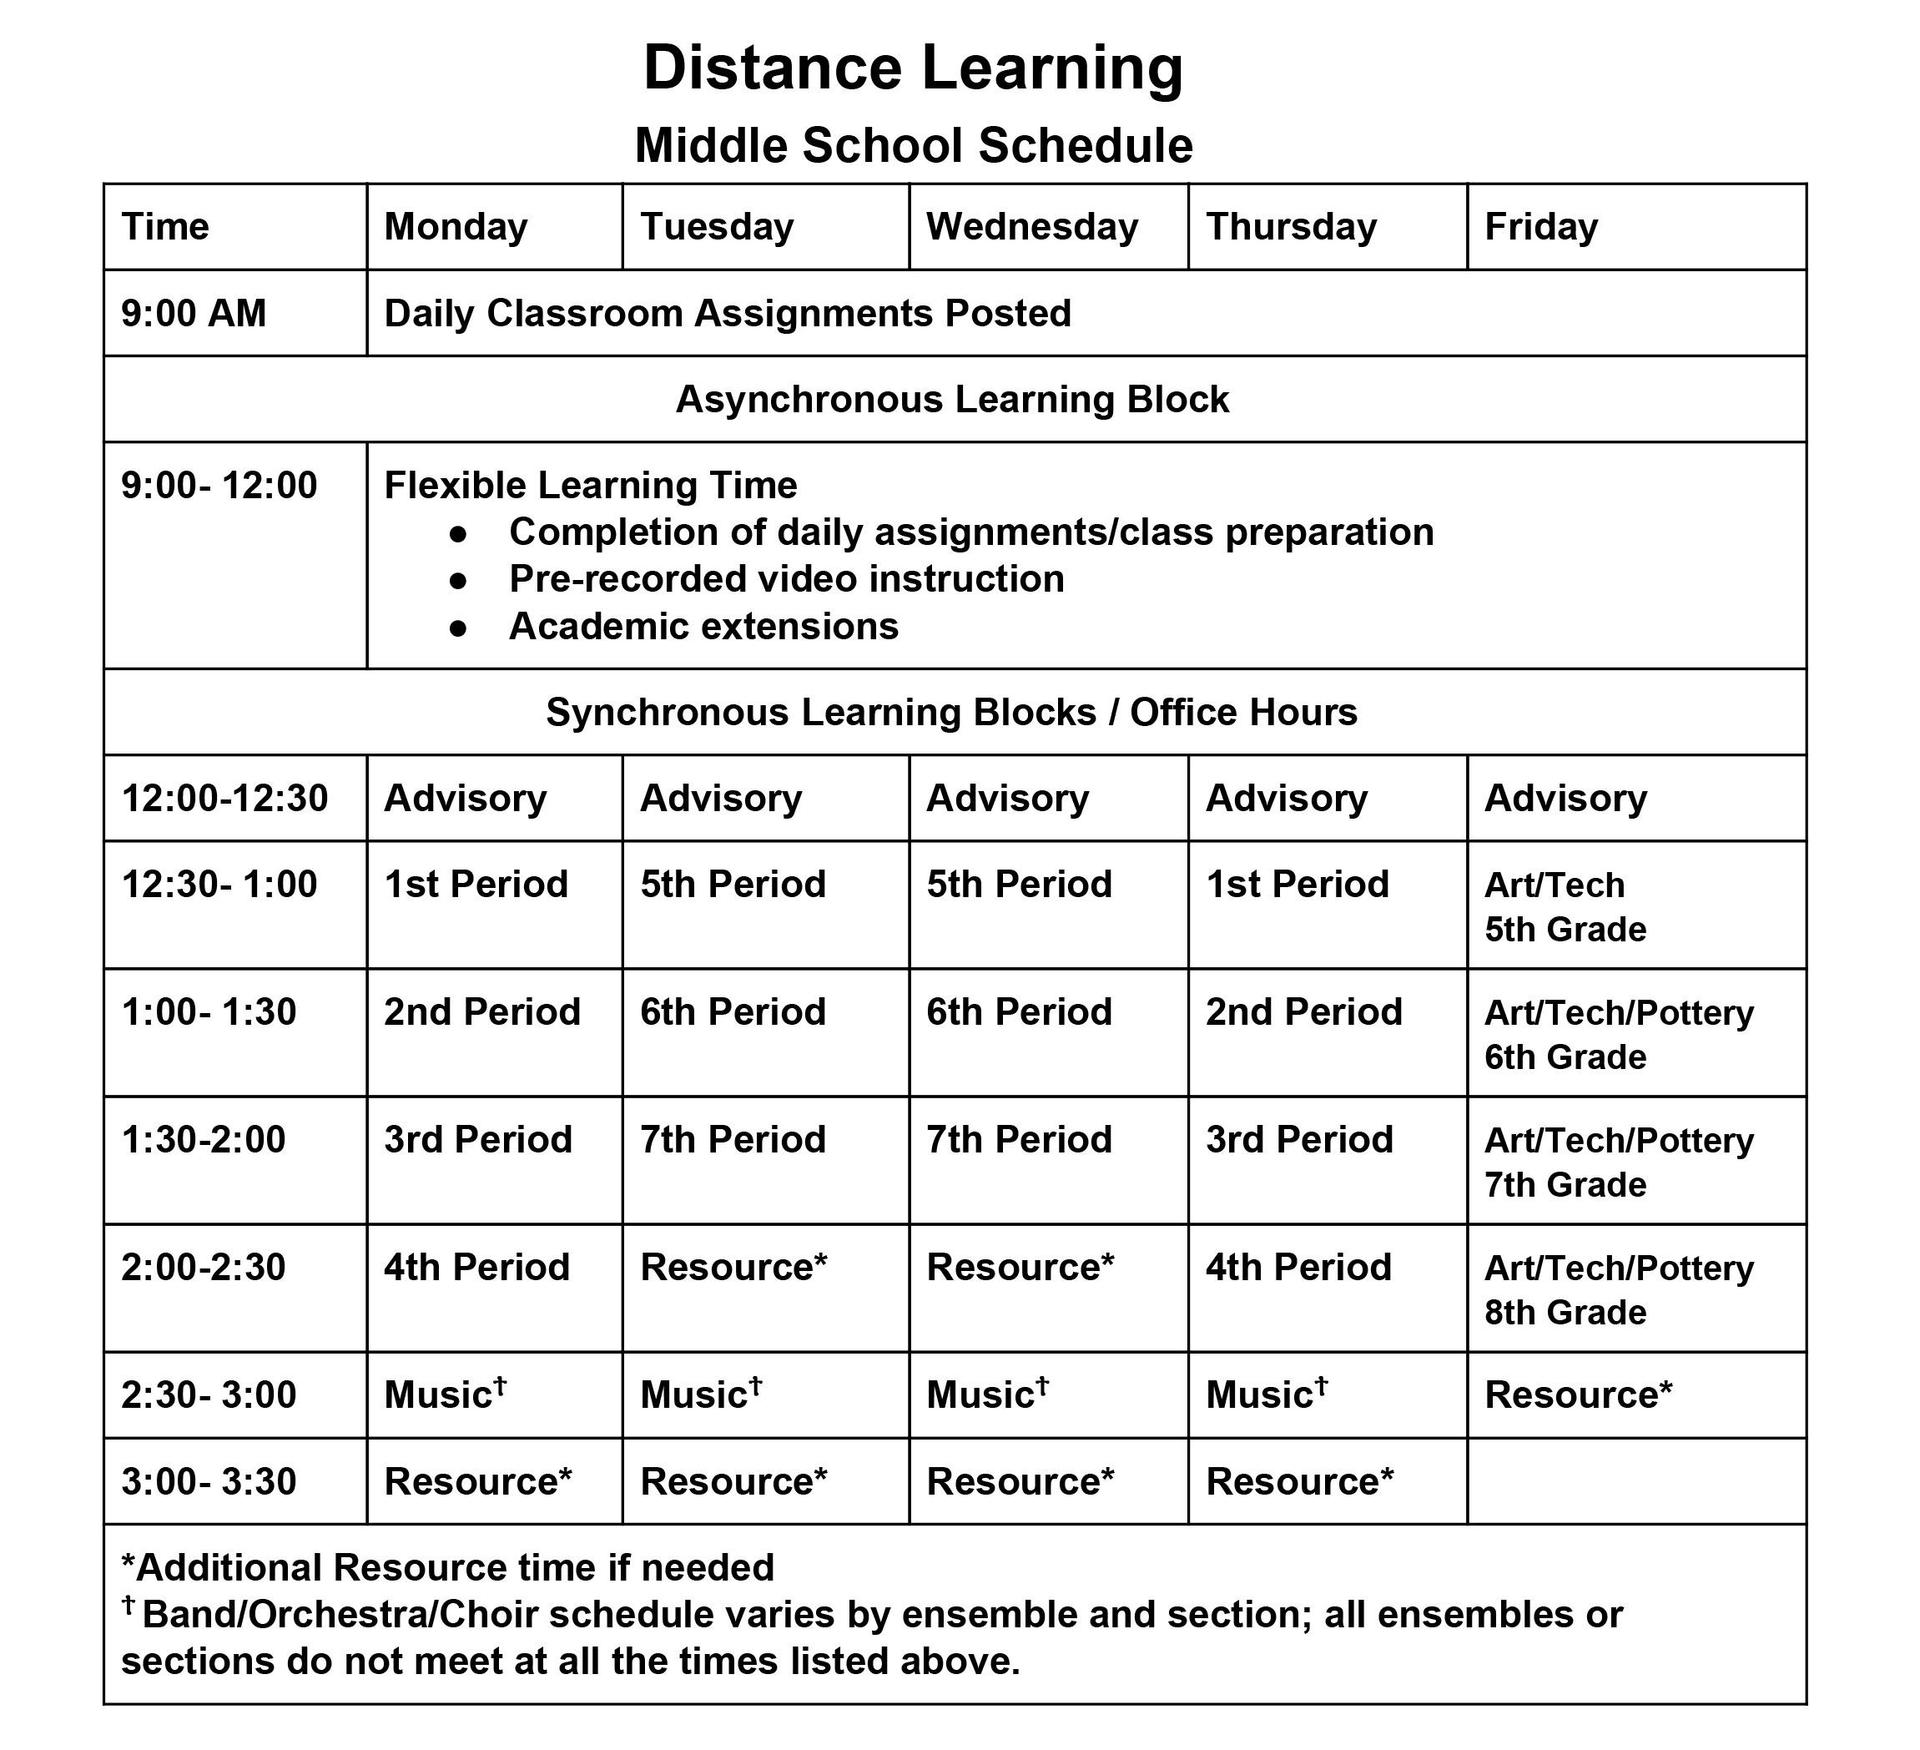 middle school distance learning schedule